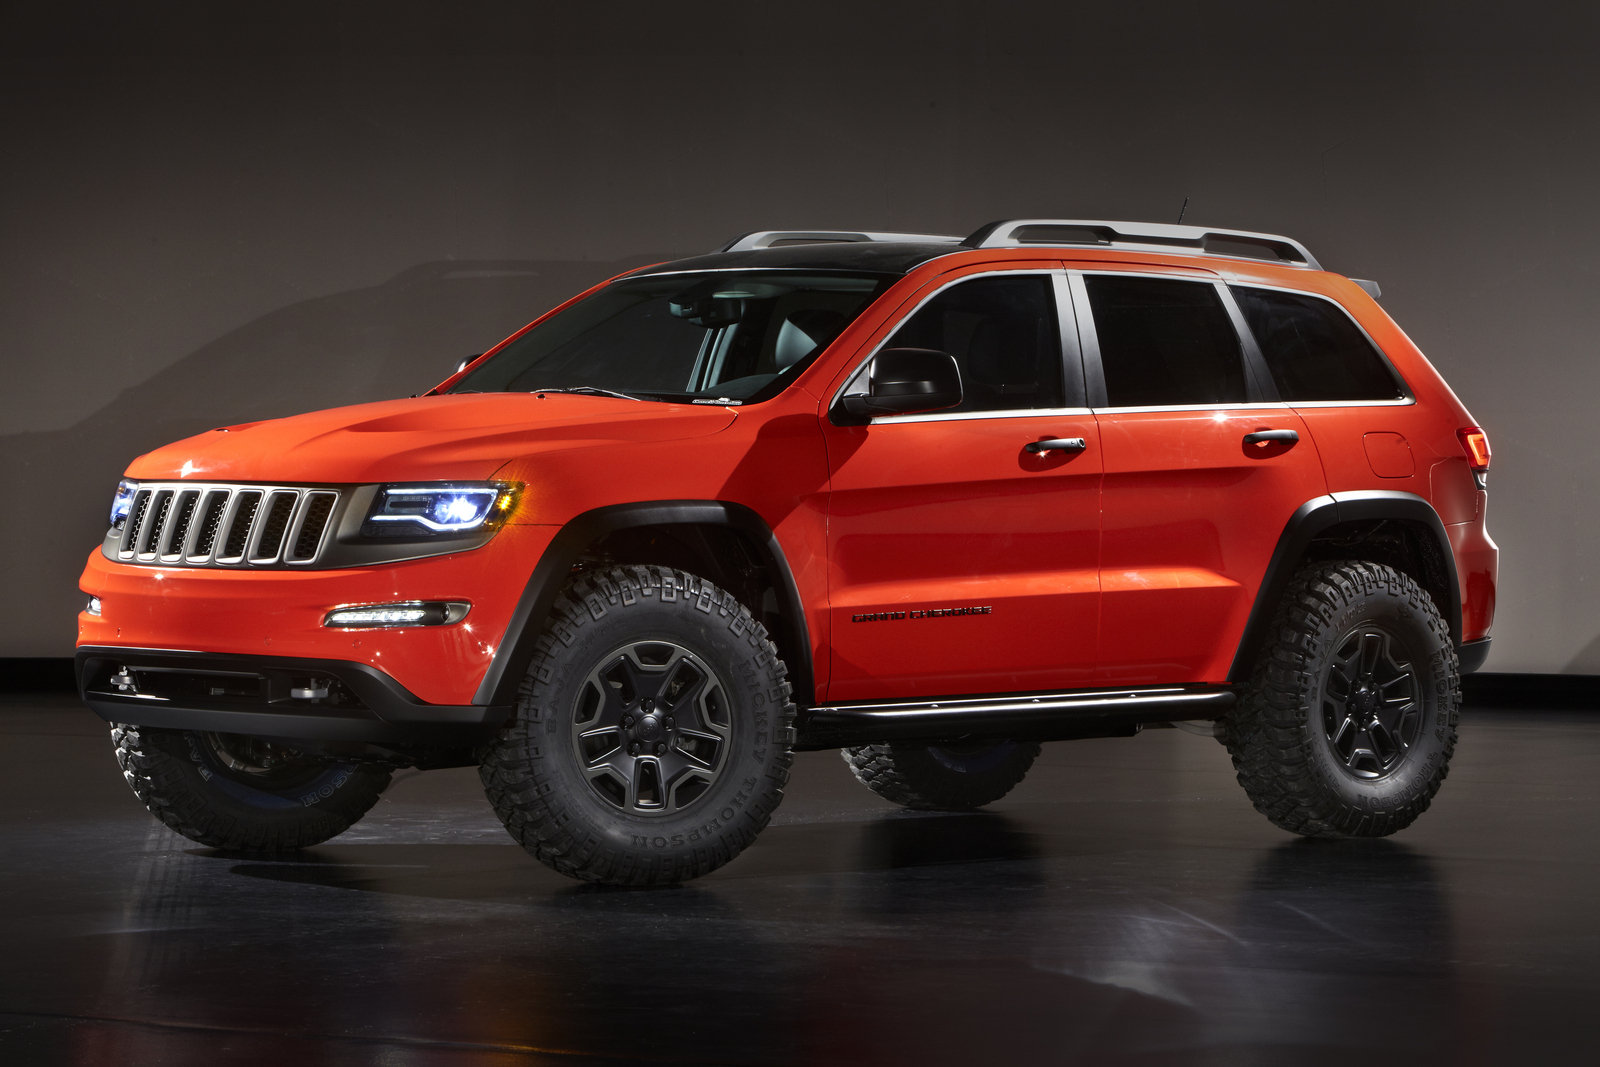 2013 jeep grand cherokee trailhawk ii concept picture 498608 car review top speed. Black Bedroom Furniture Sets. Home Design Ideas